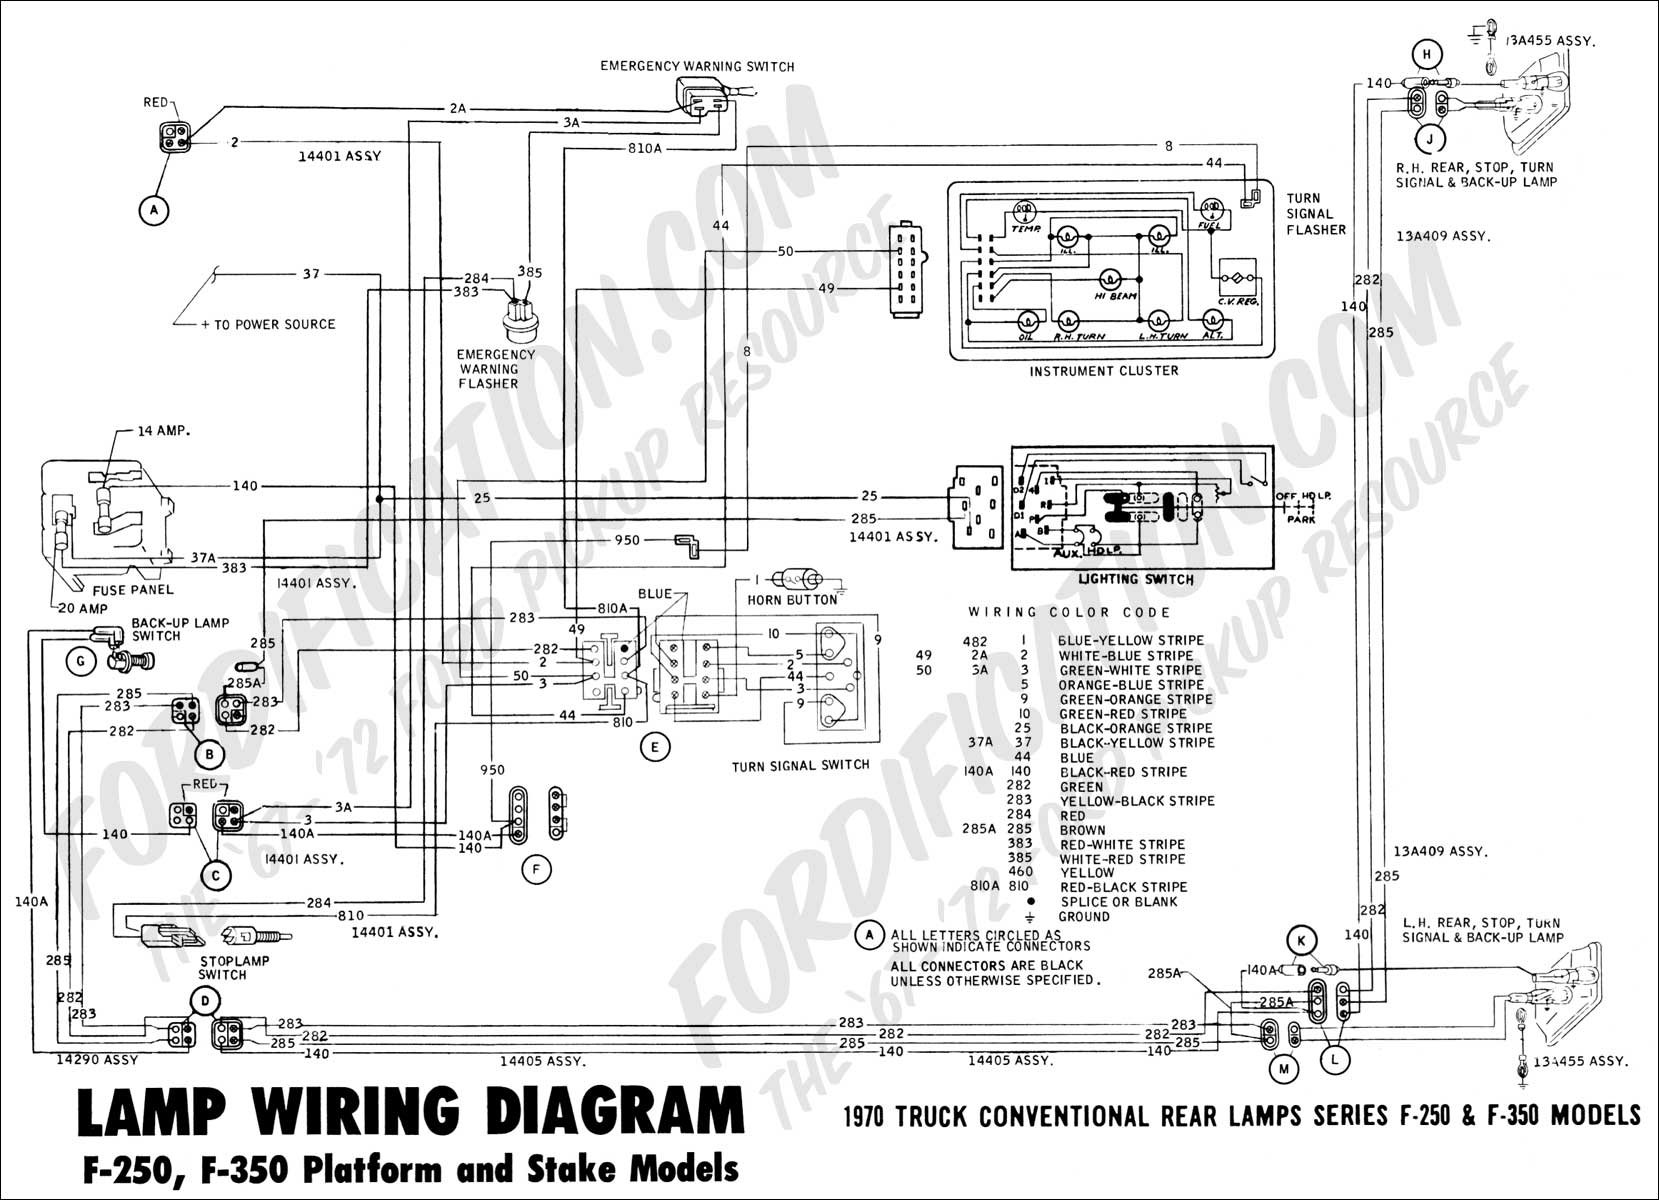 2002 F150 Dash Wiring Schematic Owner Manual Wiring Diagram